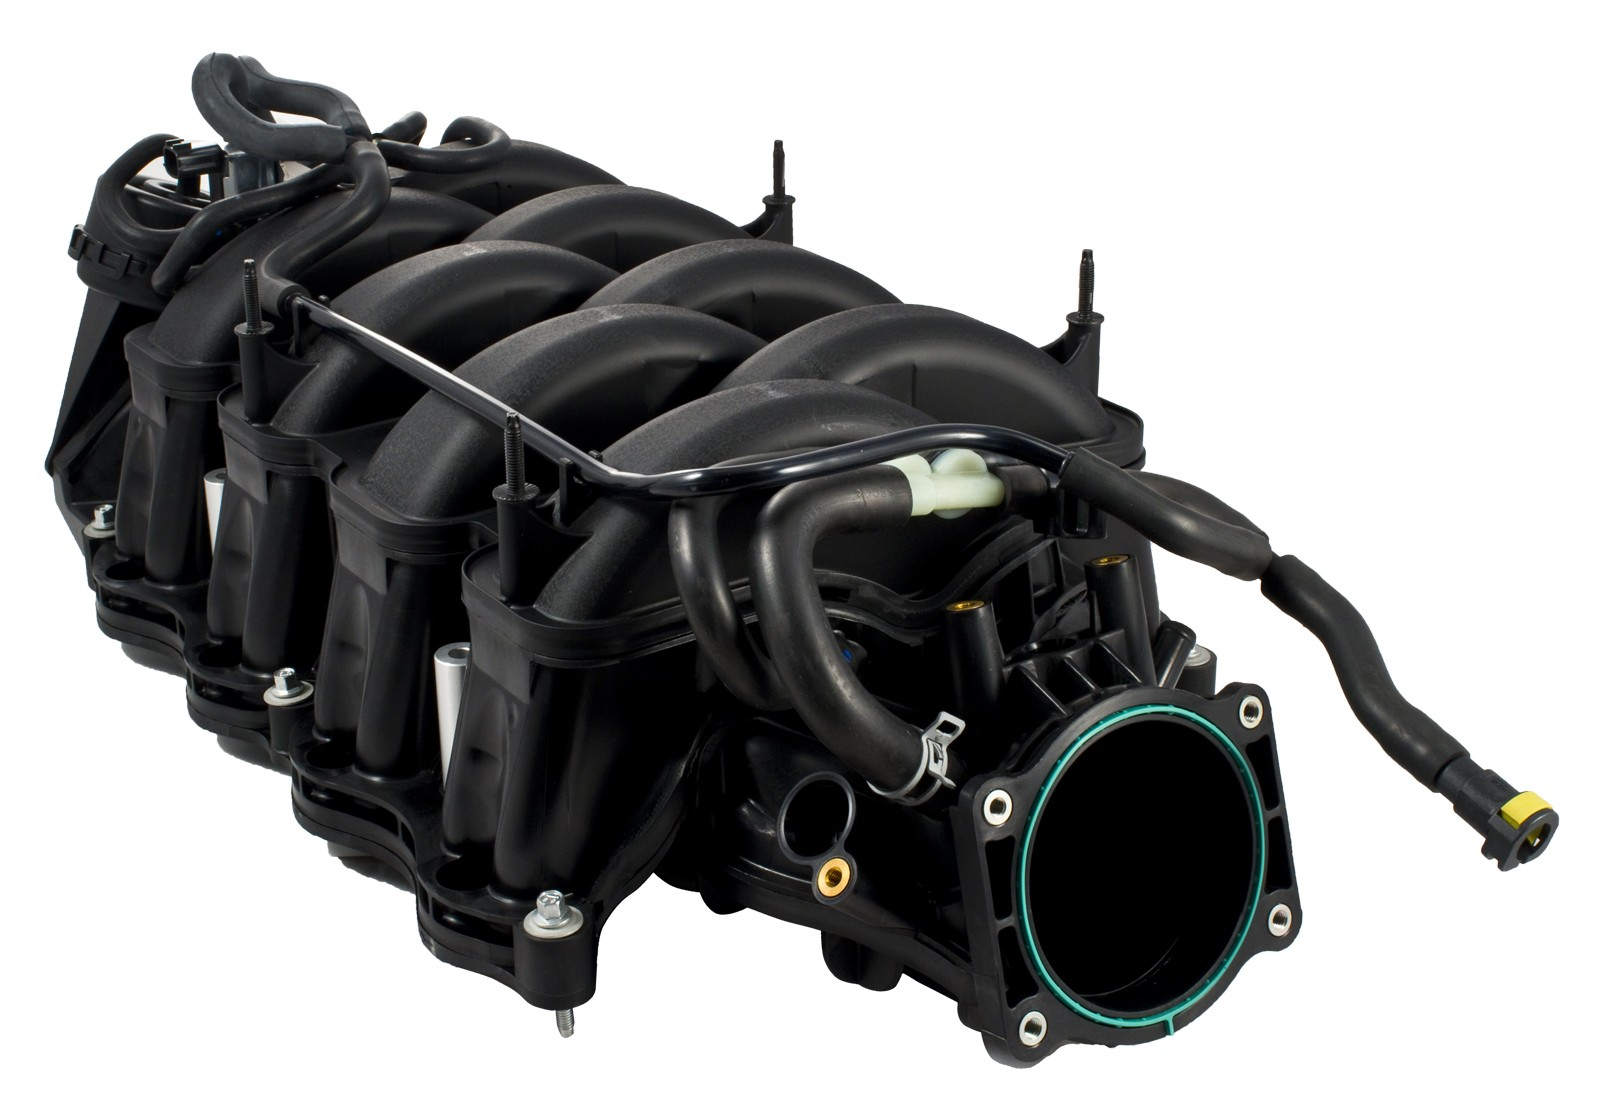 2015 2017 mustang gt 50 ford racing shelby gt350 engine intake manifold kit